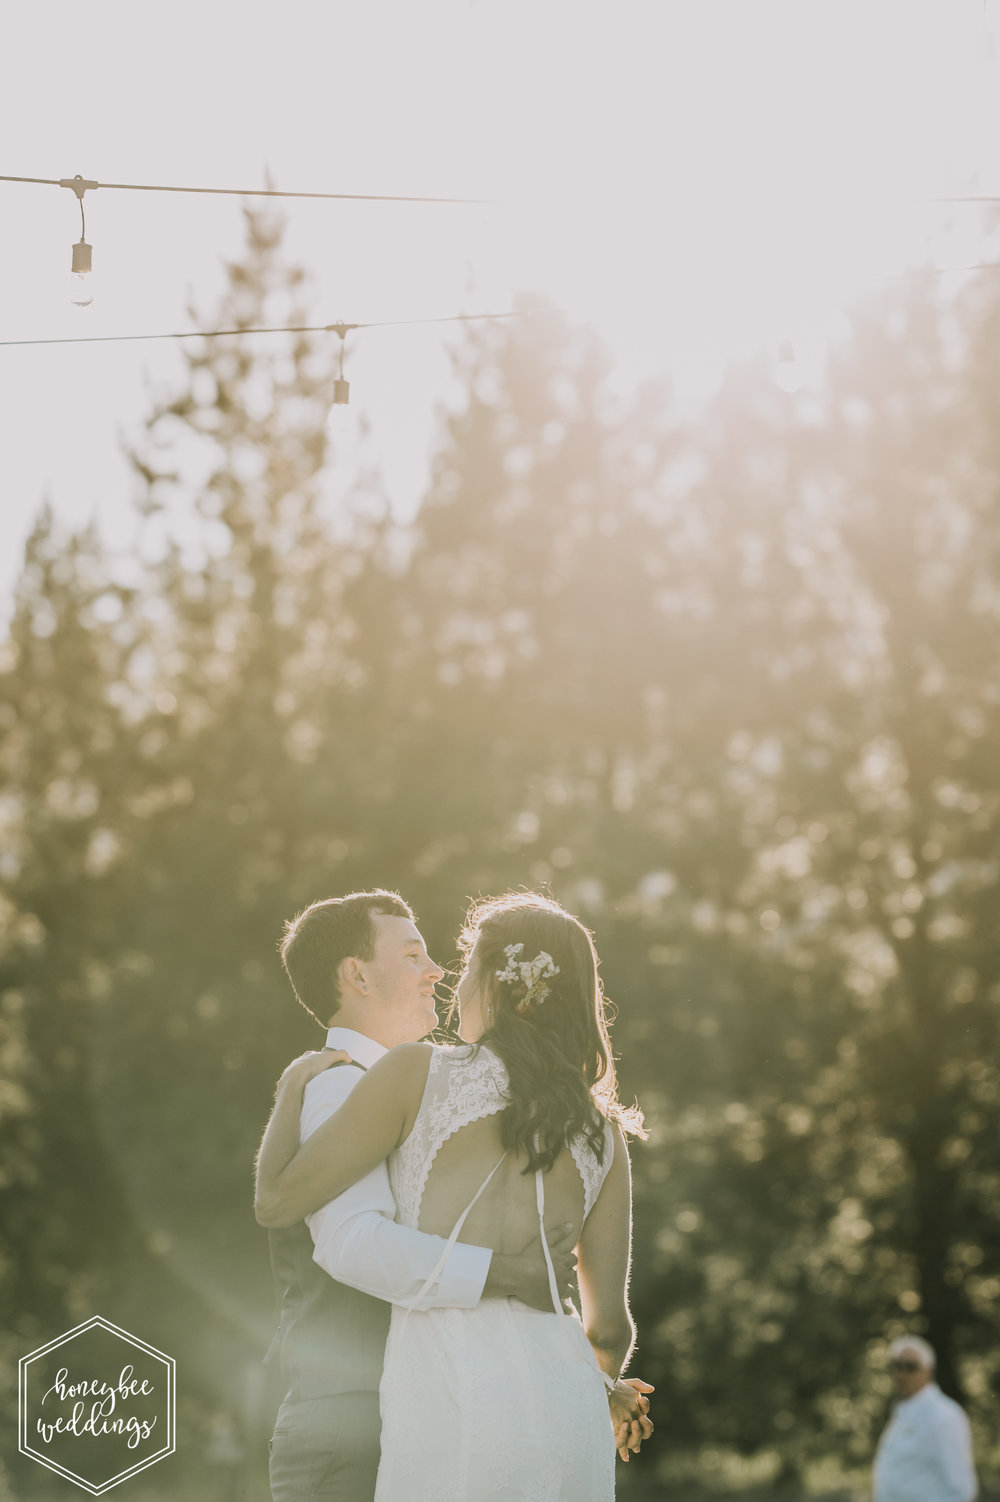 481 White Raven Wedding_Montana Wedding Photographer_Honeybee Weddings_ Meghan Maloney + Arza Hammond 2018-9313.jpg